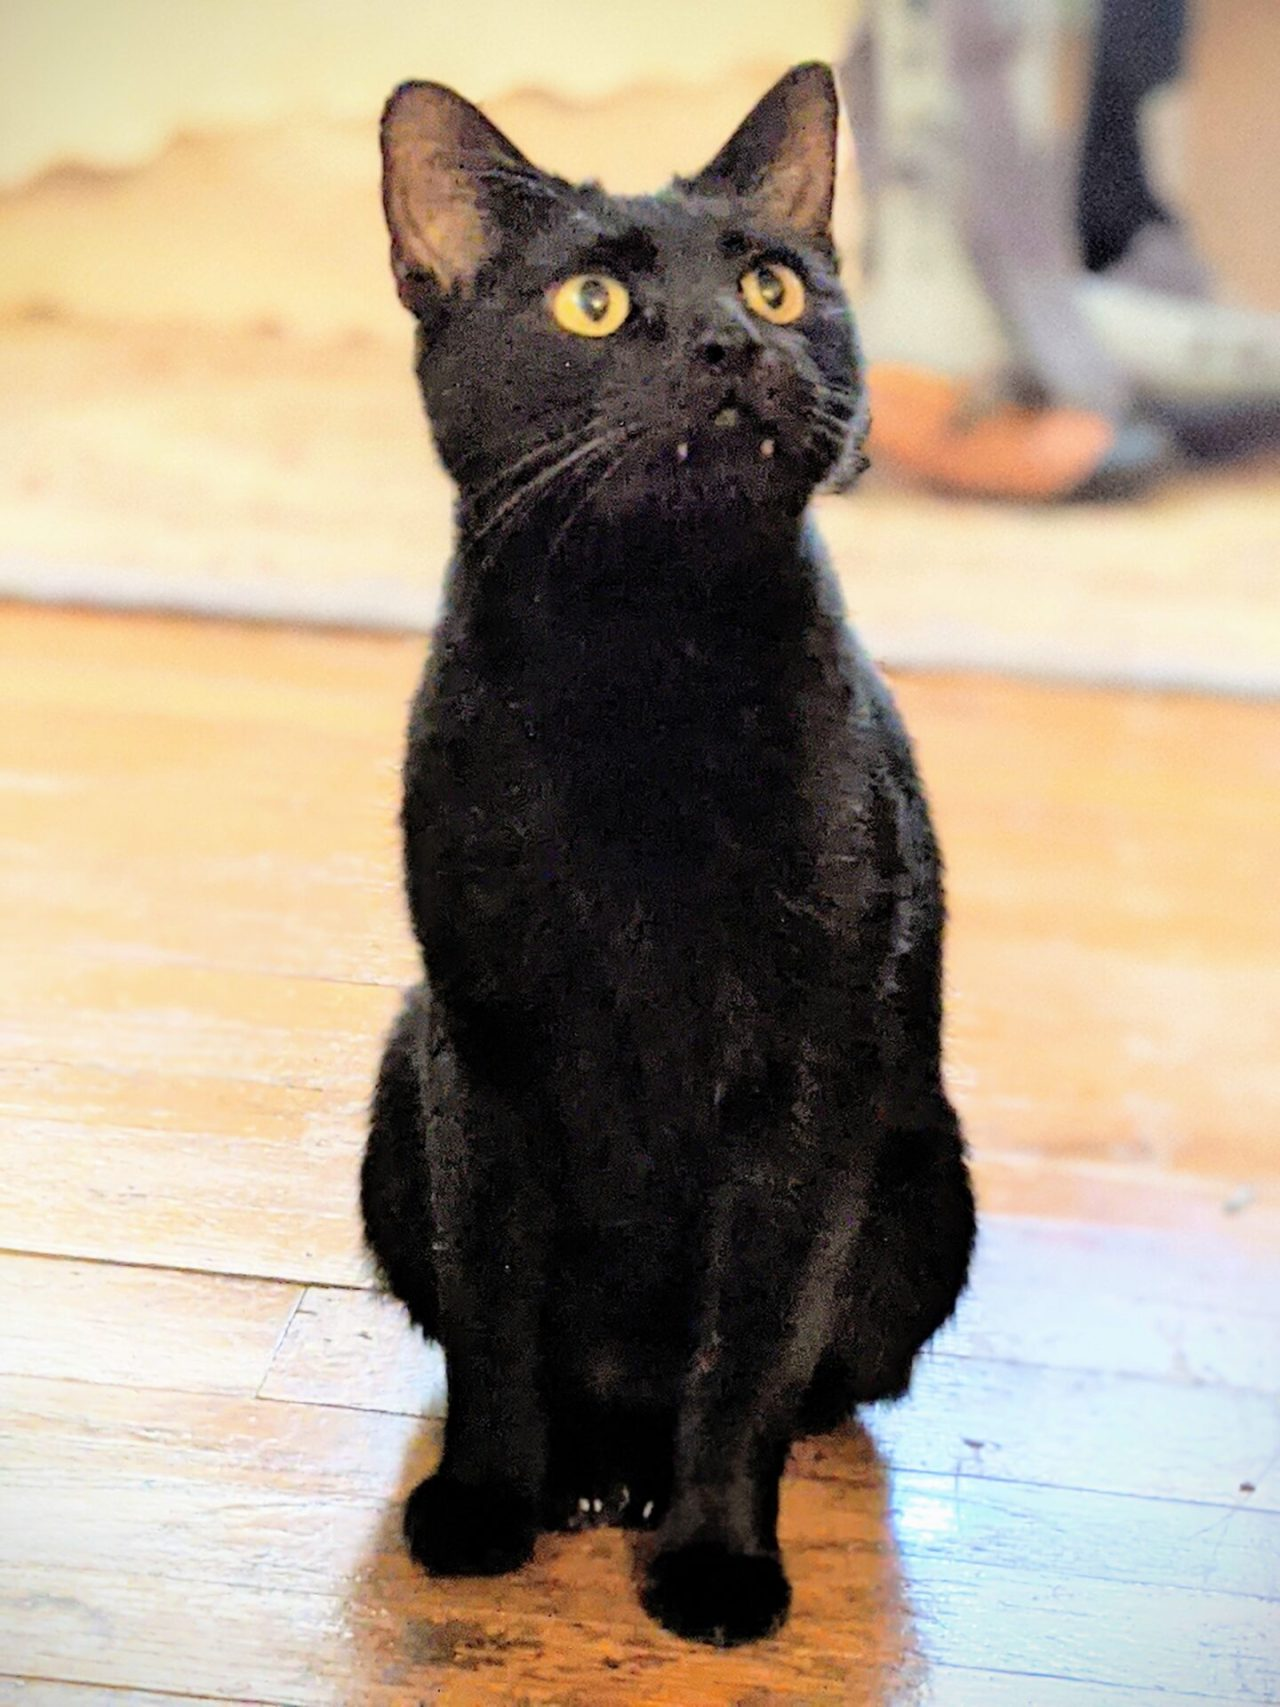 A small, fanged, black cat seated on the floor.